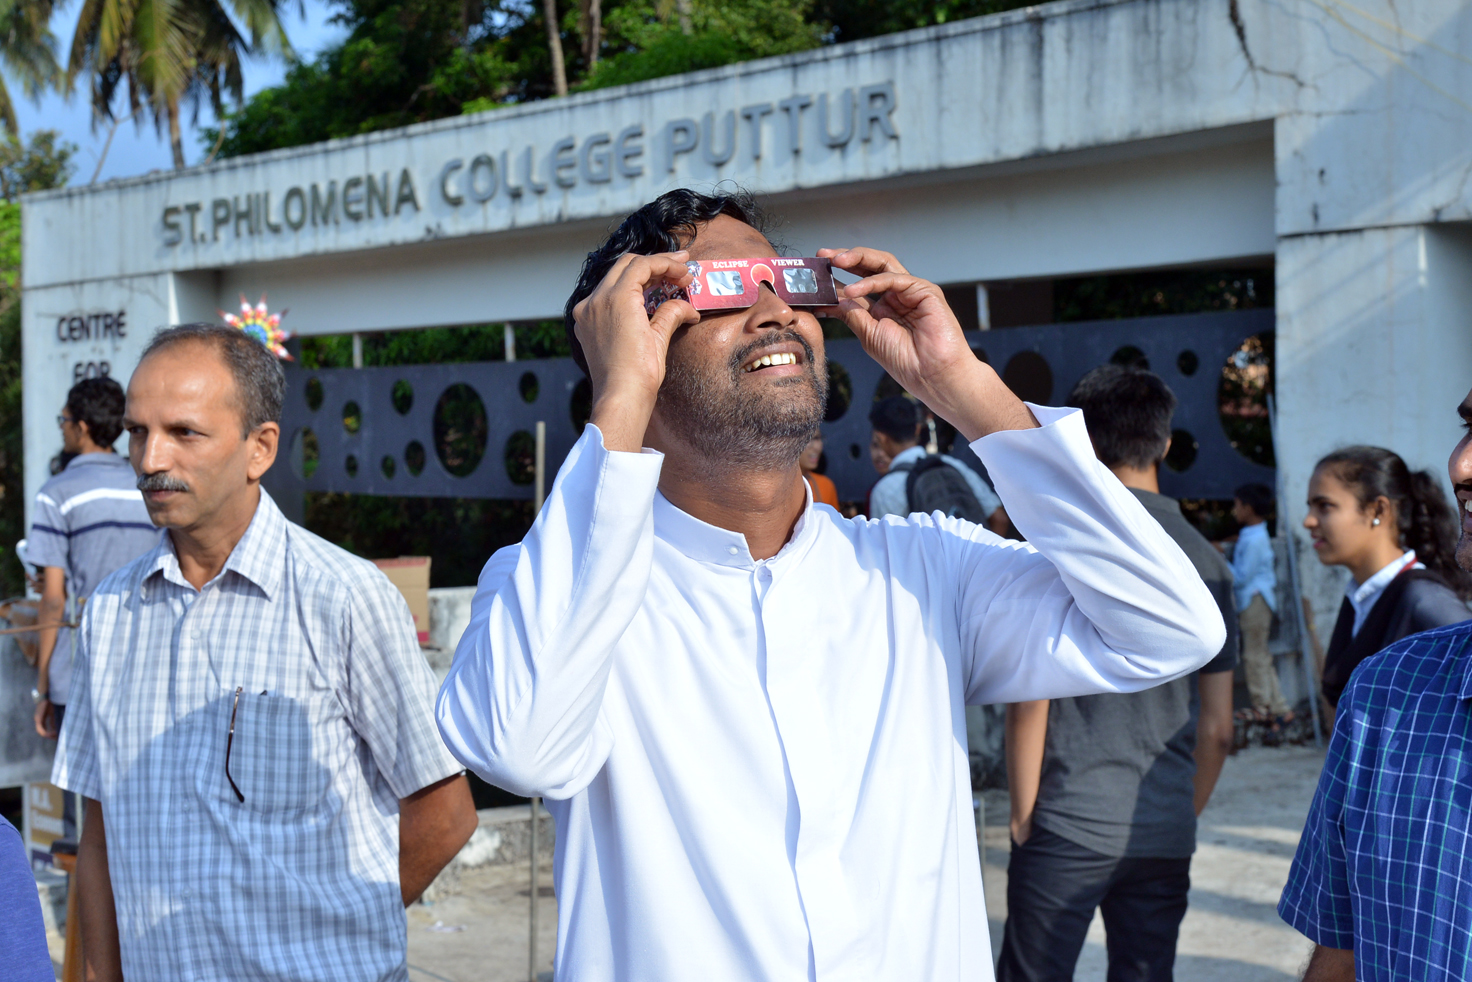 Annular Solar Eclipse observed at St Philomena College Puttur